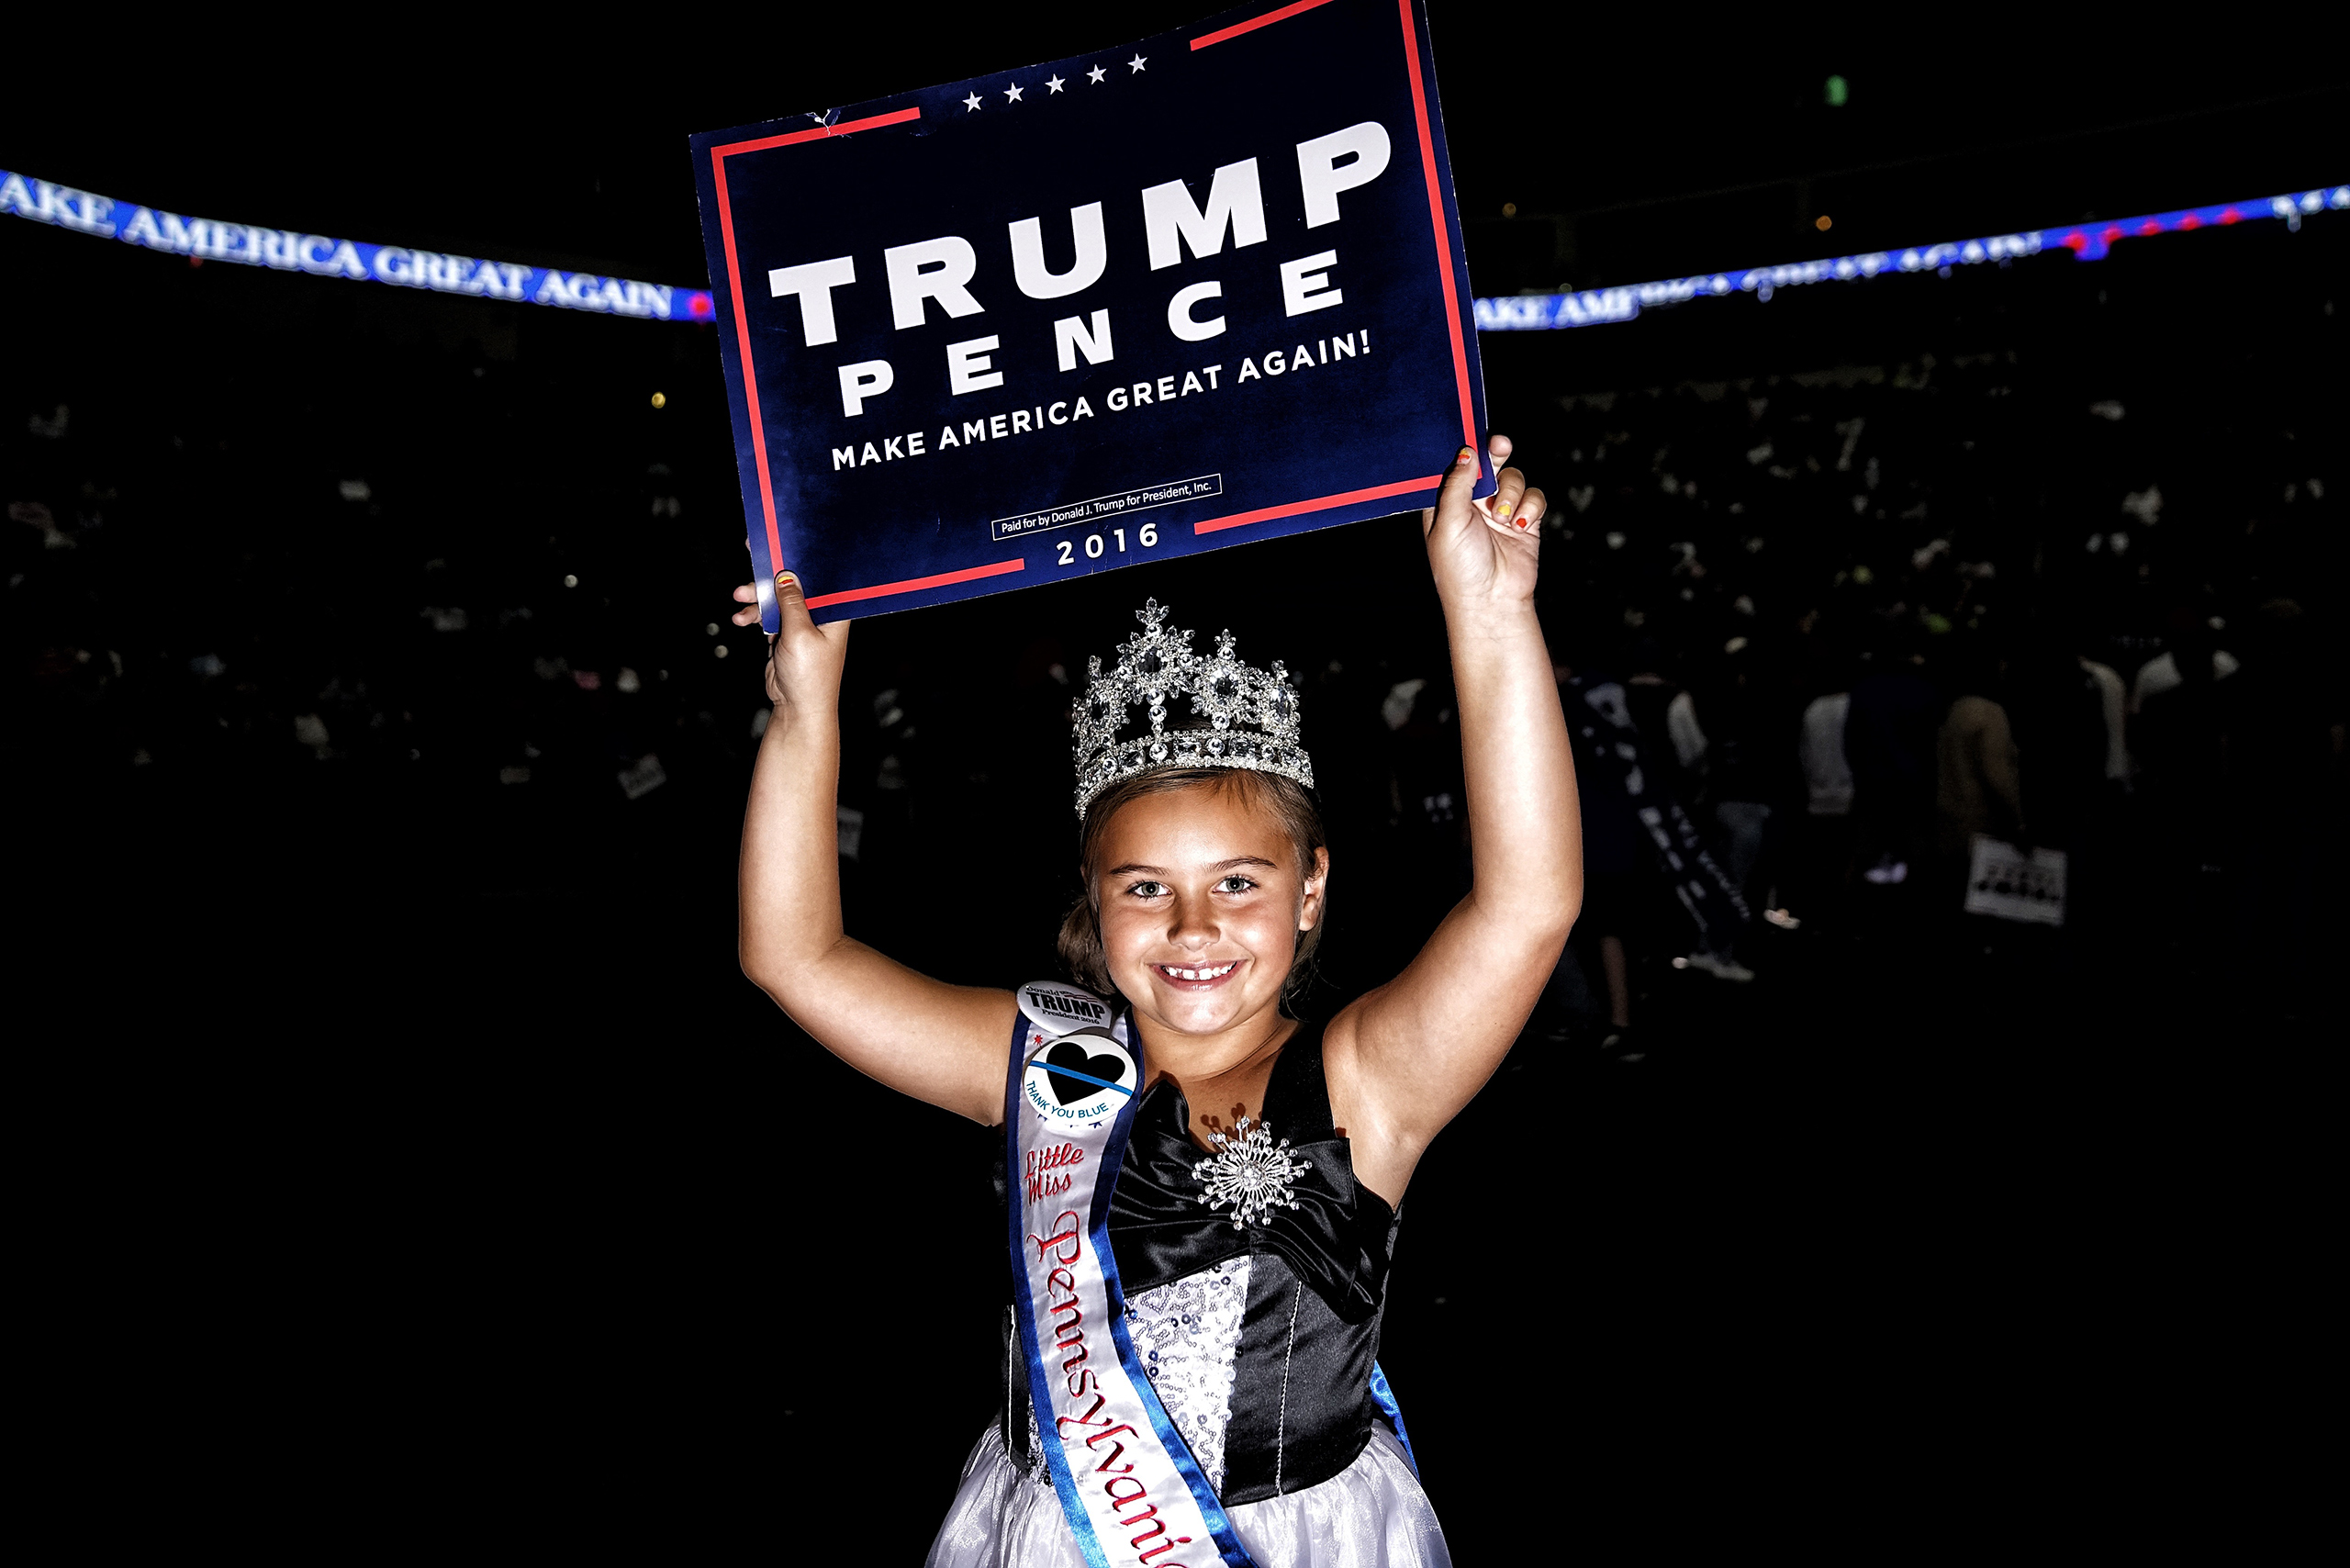 Little Miss Pennsylvania holds a campaign sign for Republican Presidential candidate Donald Trump at a rally on Nov. 4, 2016 in Hershey, Pa.